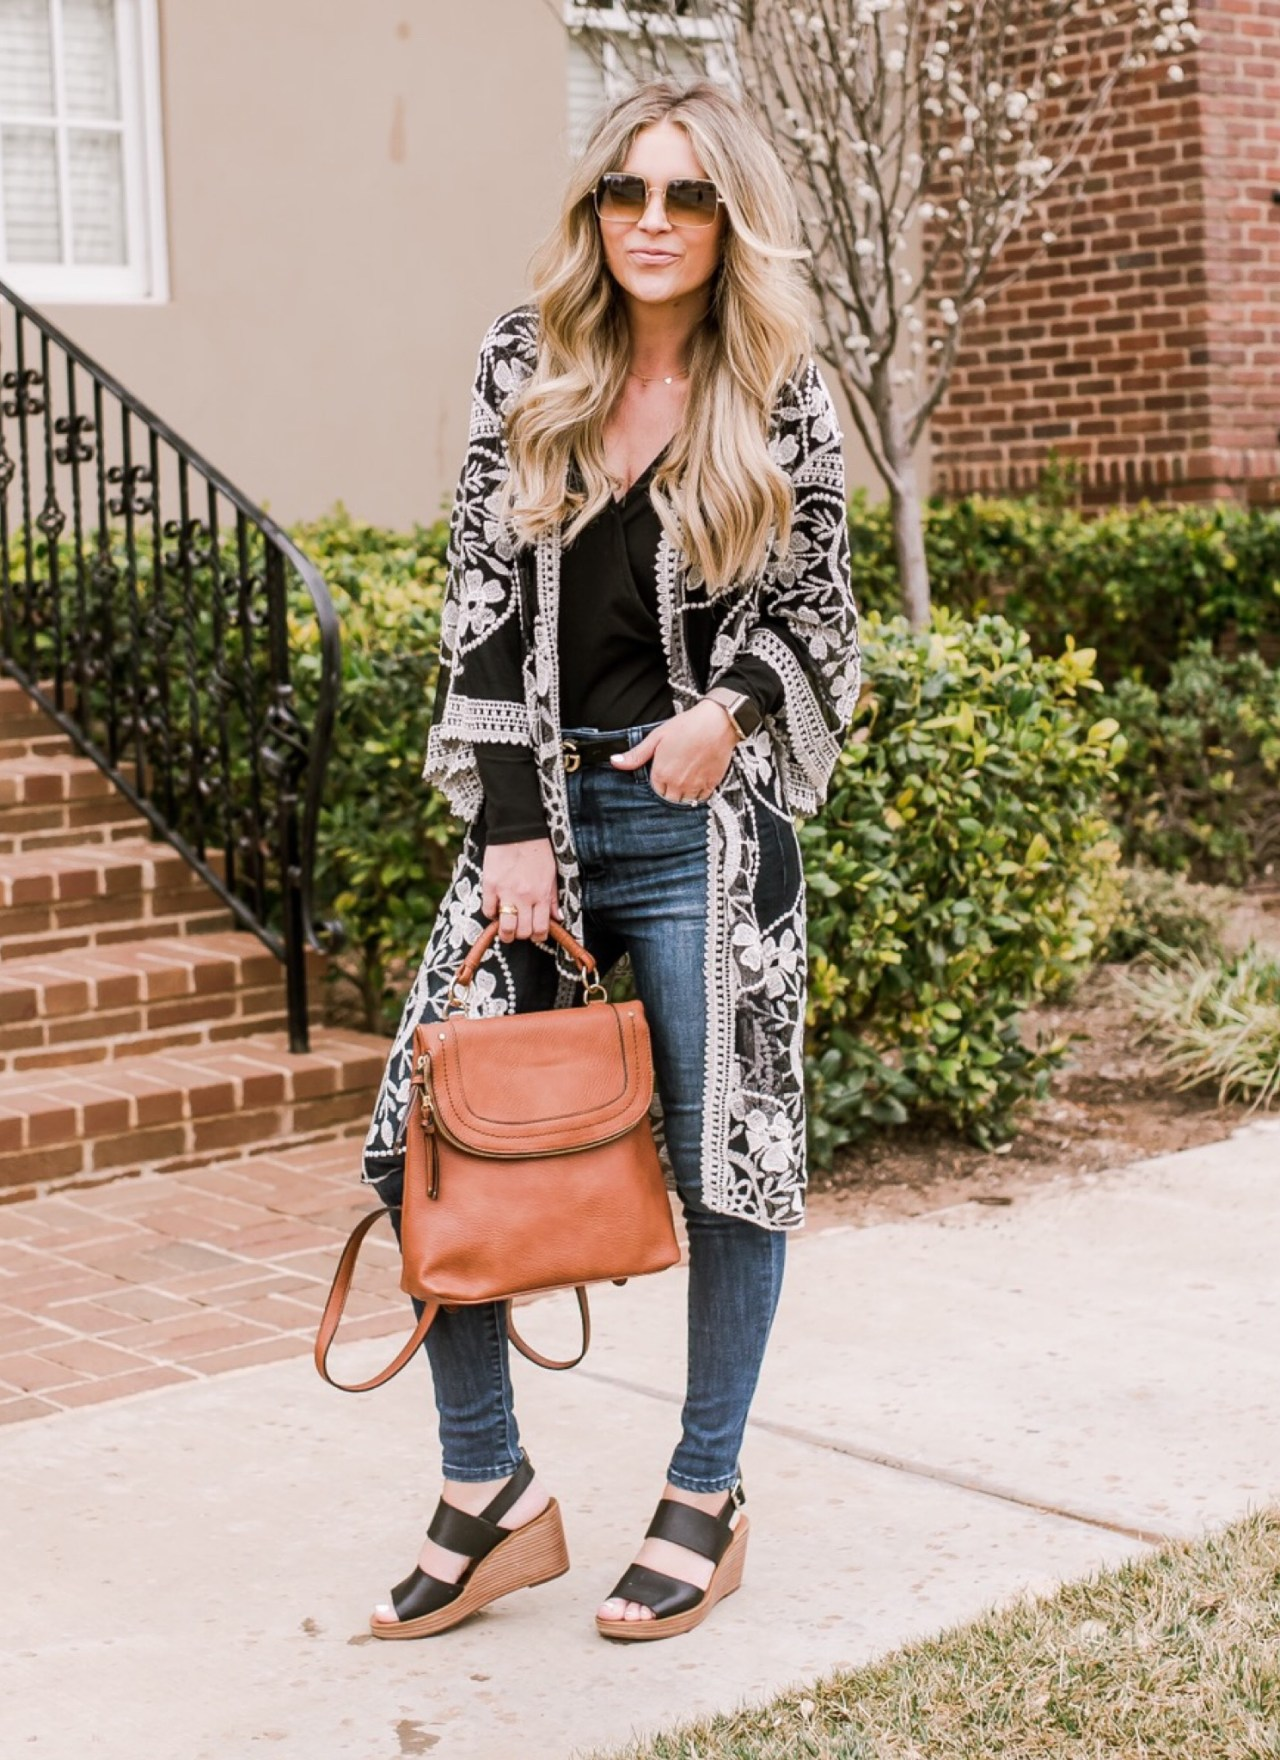 Spring Transitional Outfits Under $100